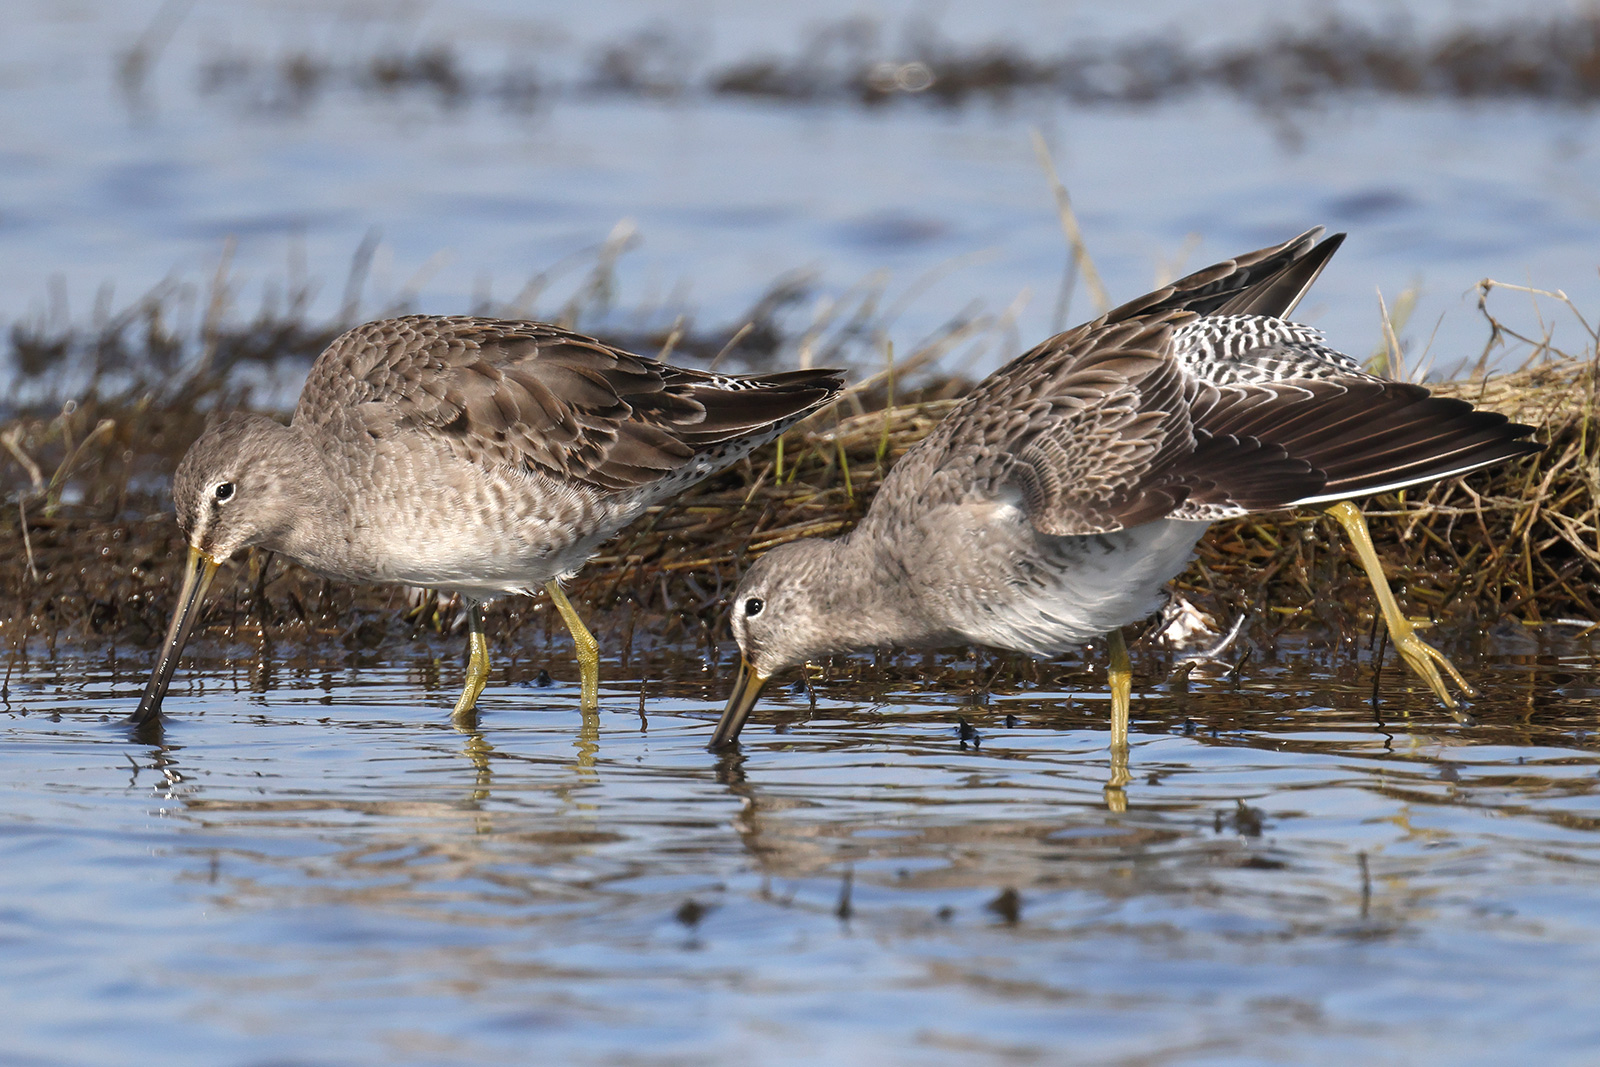 Long-billed Dowitcher, Co. Wexford, Ireland.